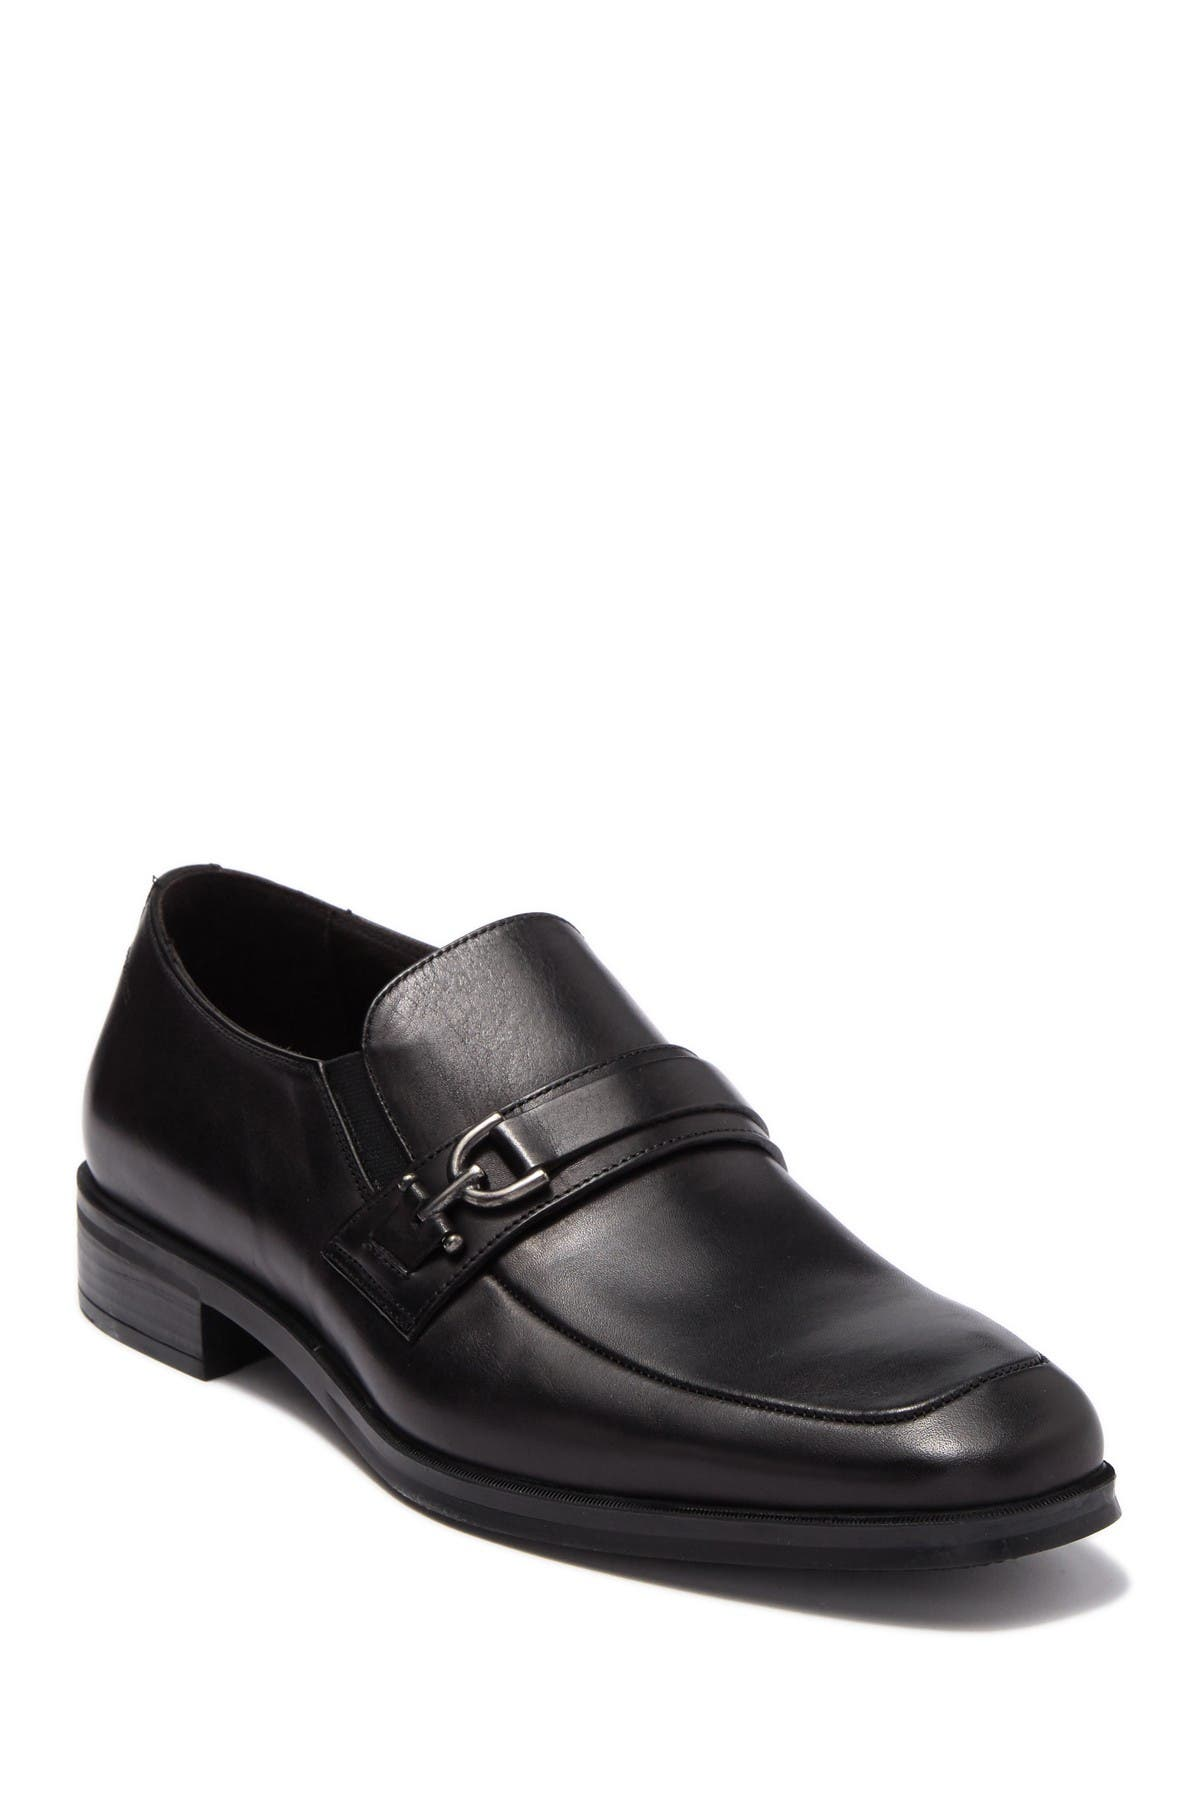 Image of Bruno Magli Pedro Leather Loafer